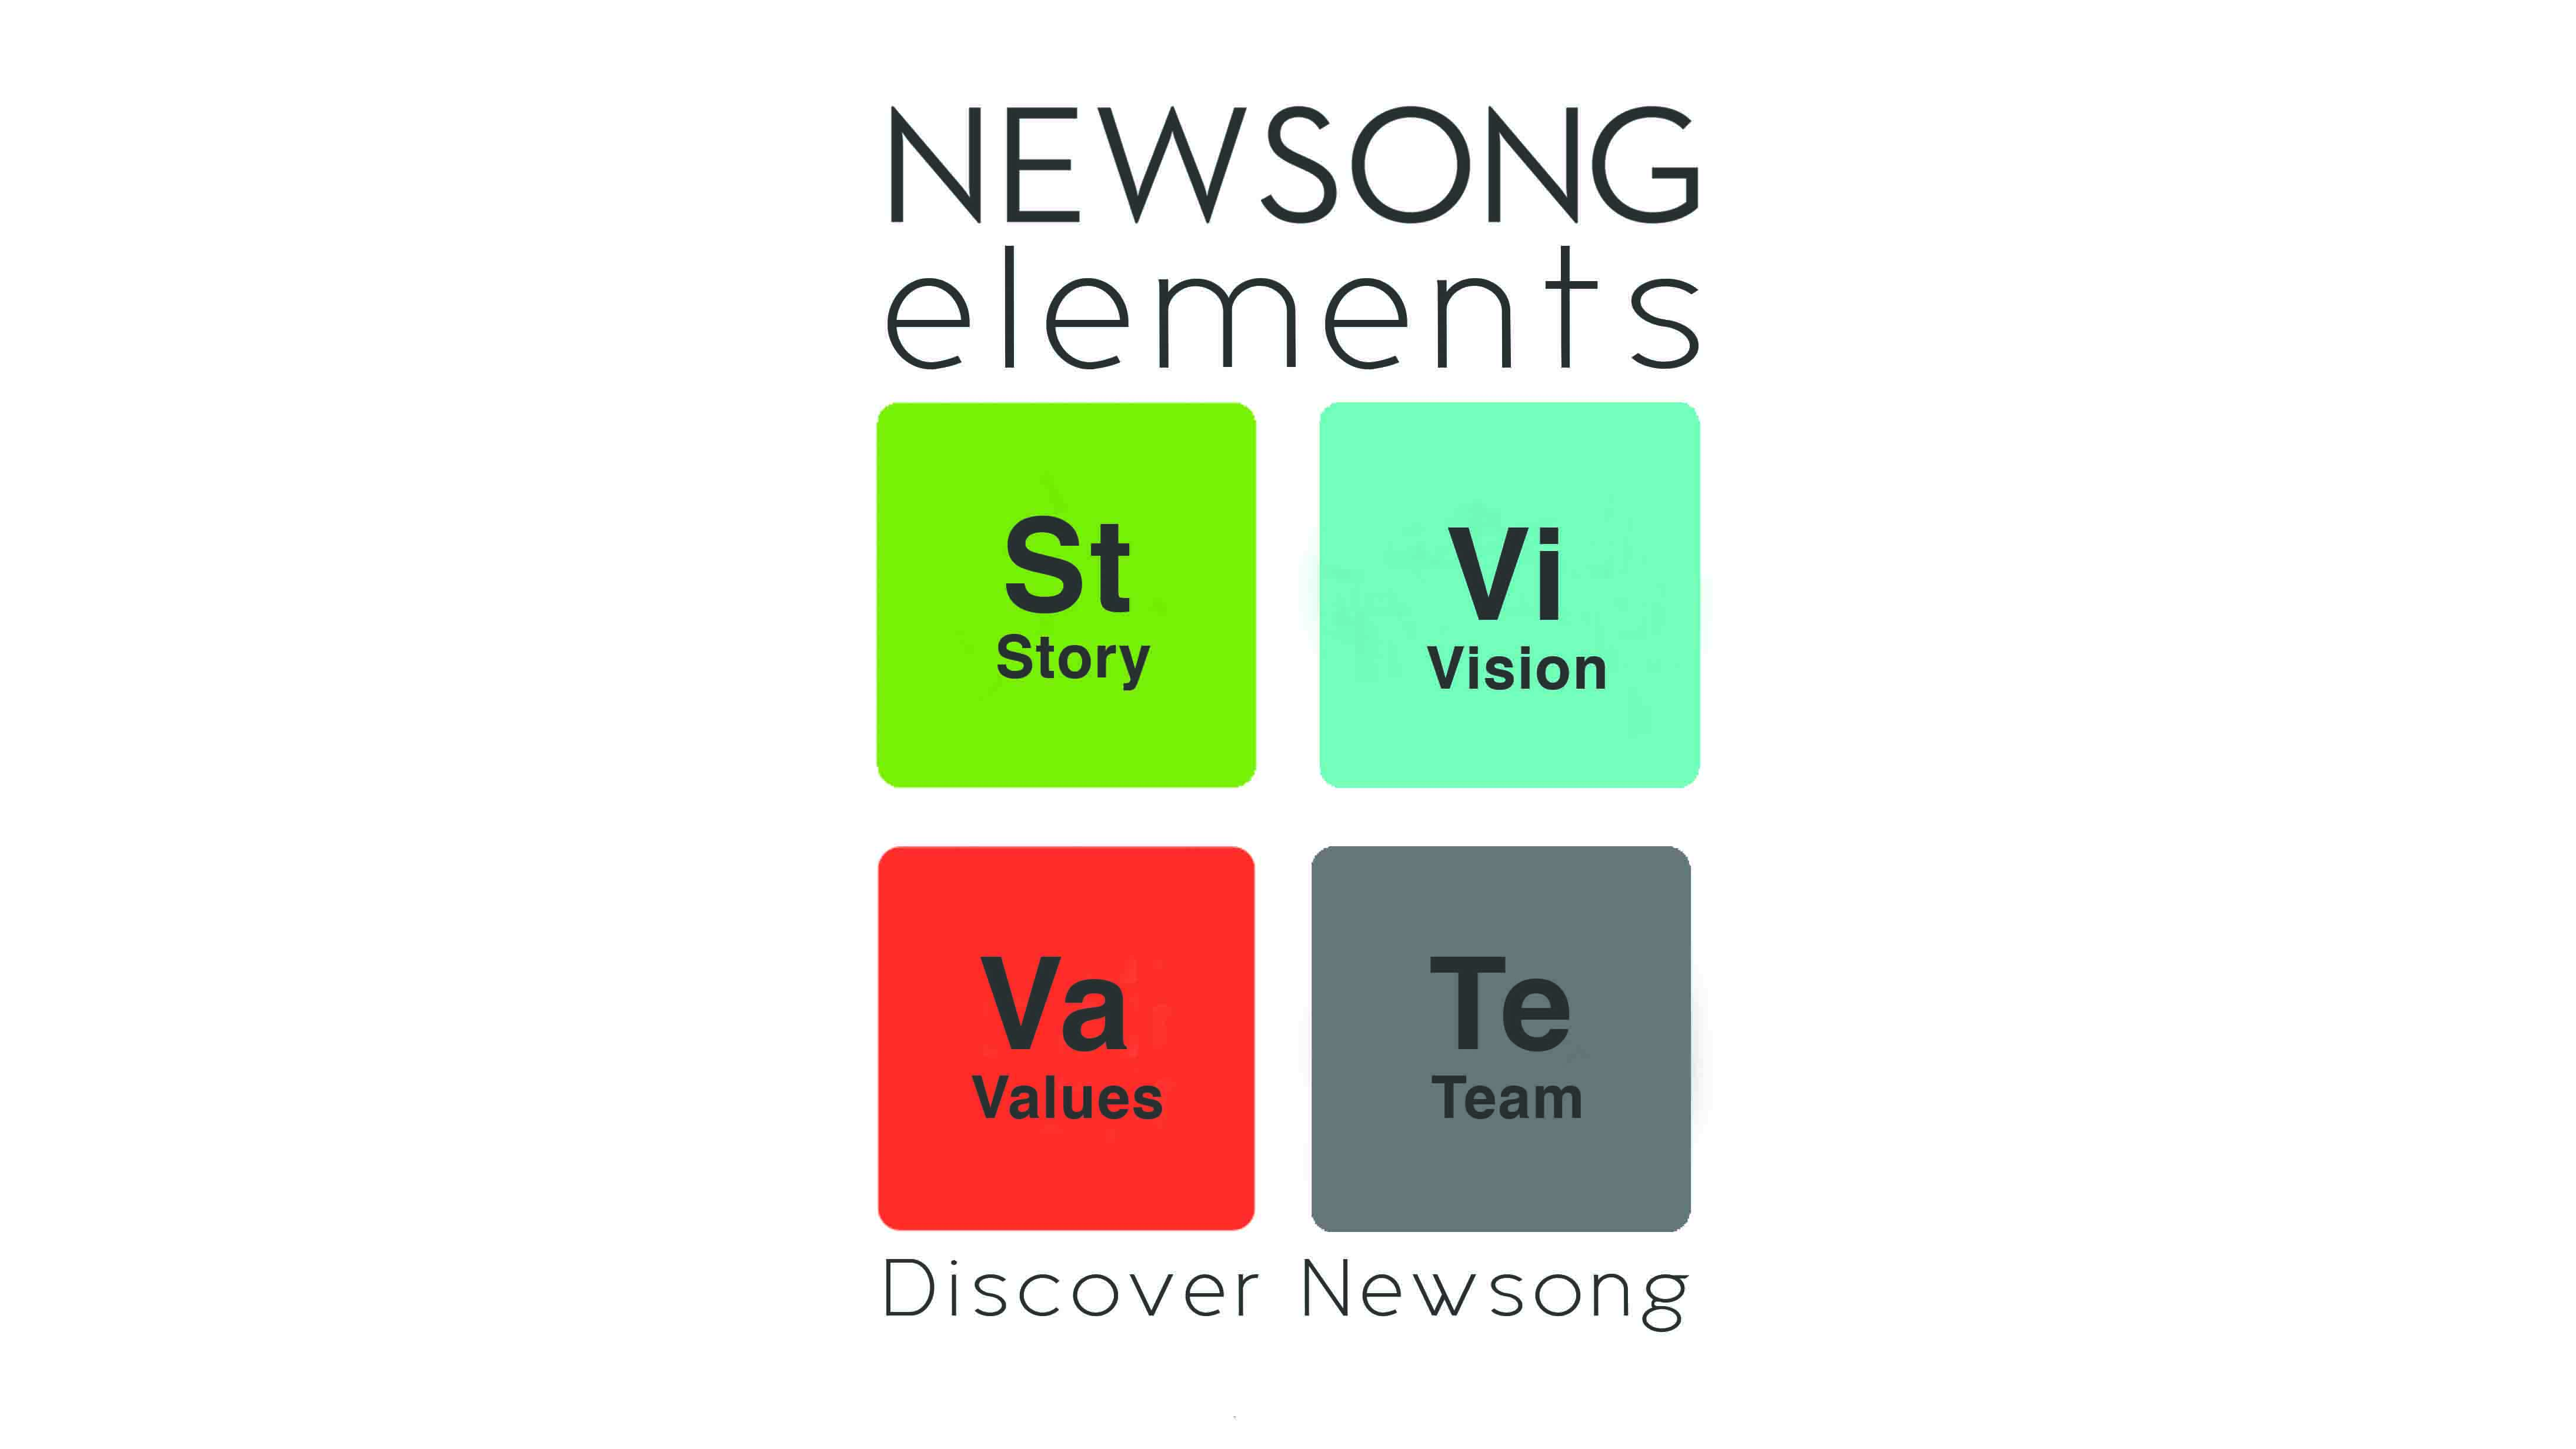 Newsong elements final 16x9 generic